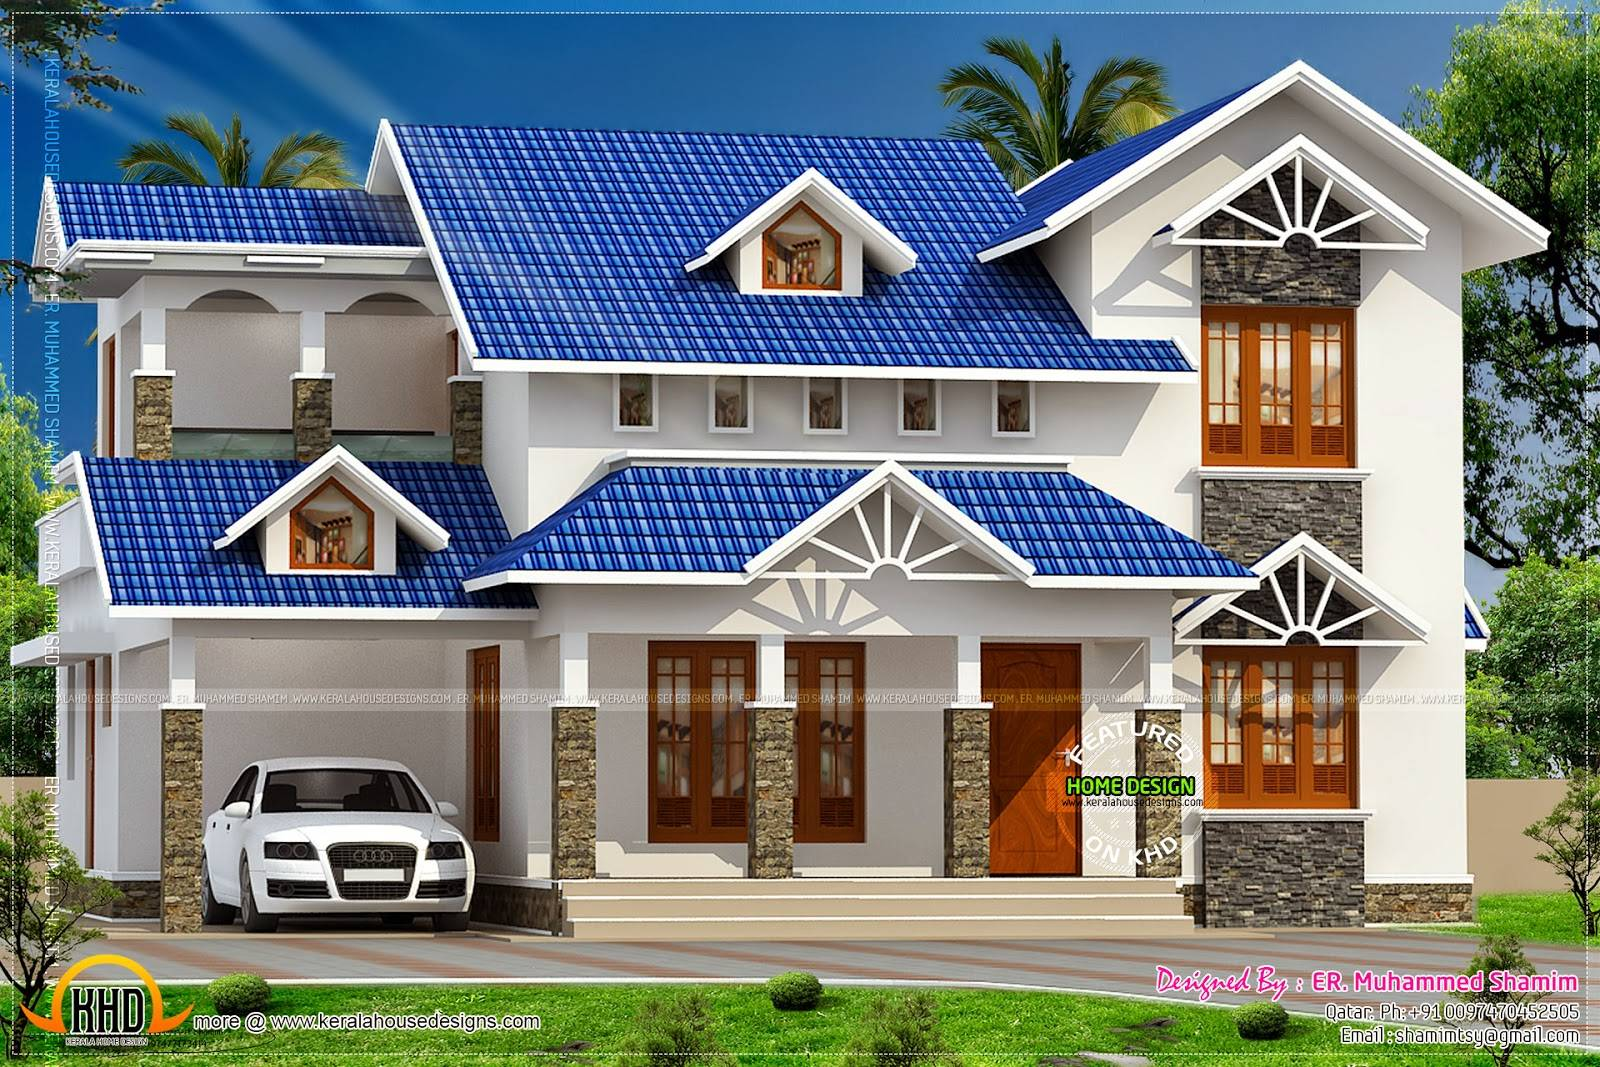 Nice Sloped Roof Kerala Home Design Indian House Plans Home Plans Blueprints 90205